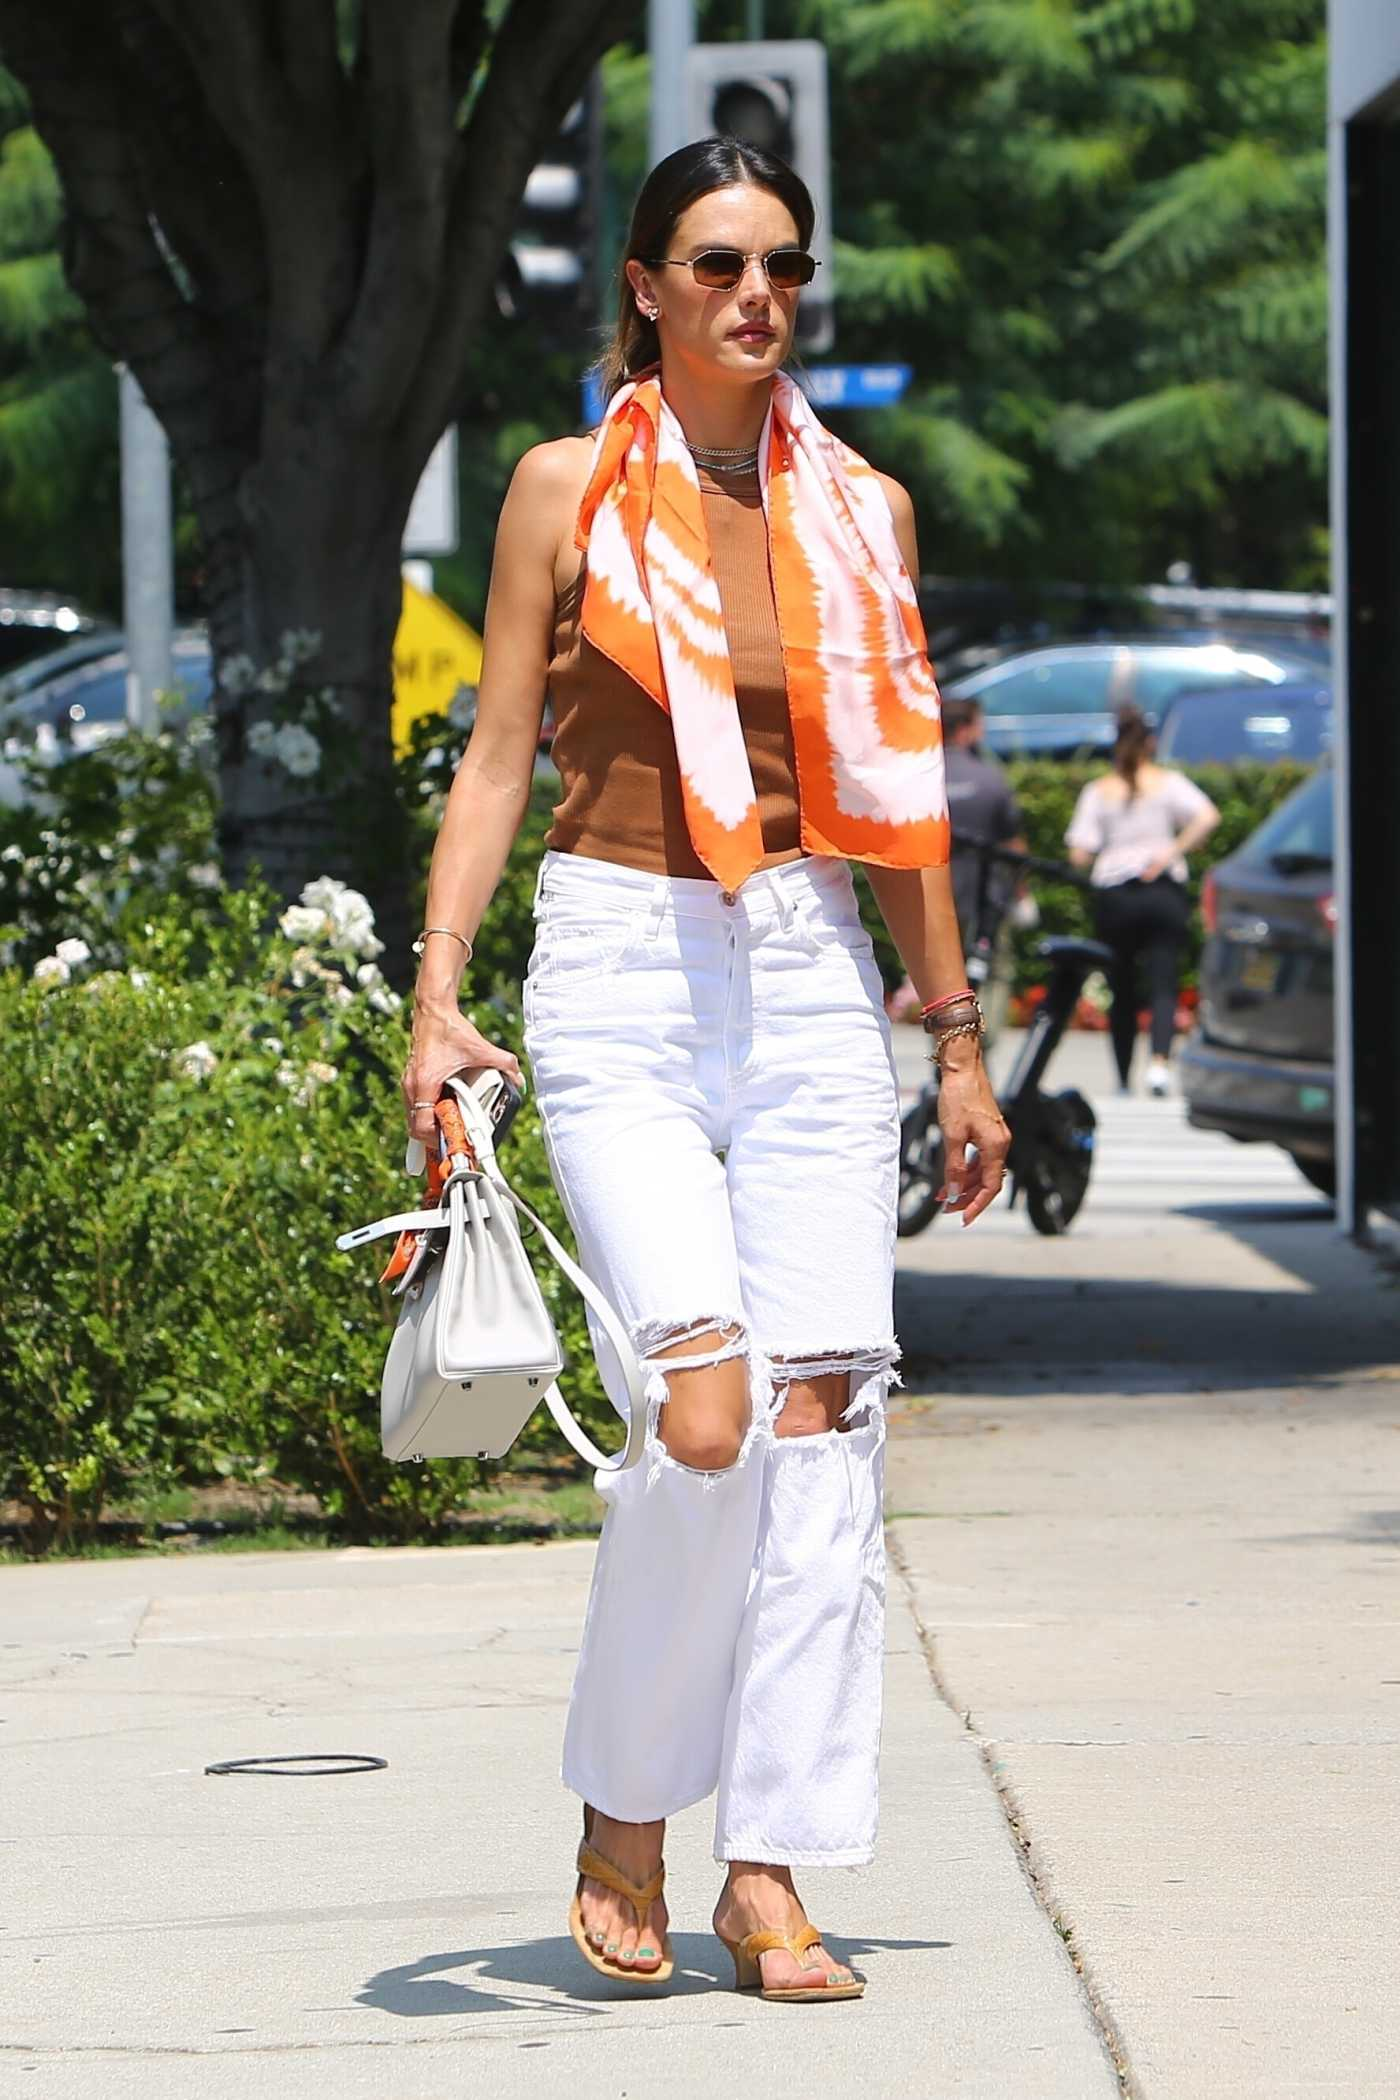 Alessandra Ambrosio in a White Ripped Jeans Arrives for a Business Meeting in Beverly Hills 08/24/2021